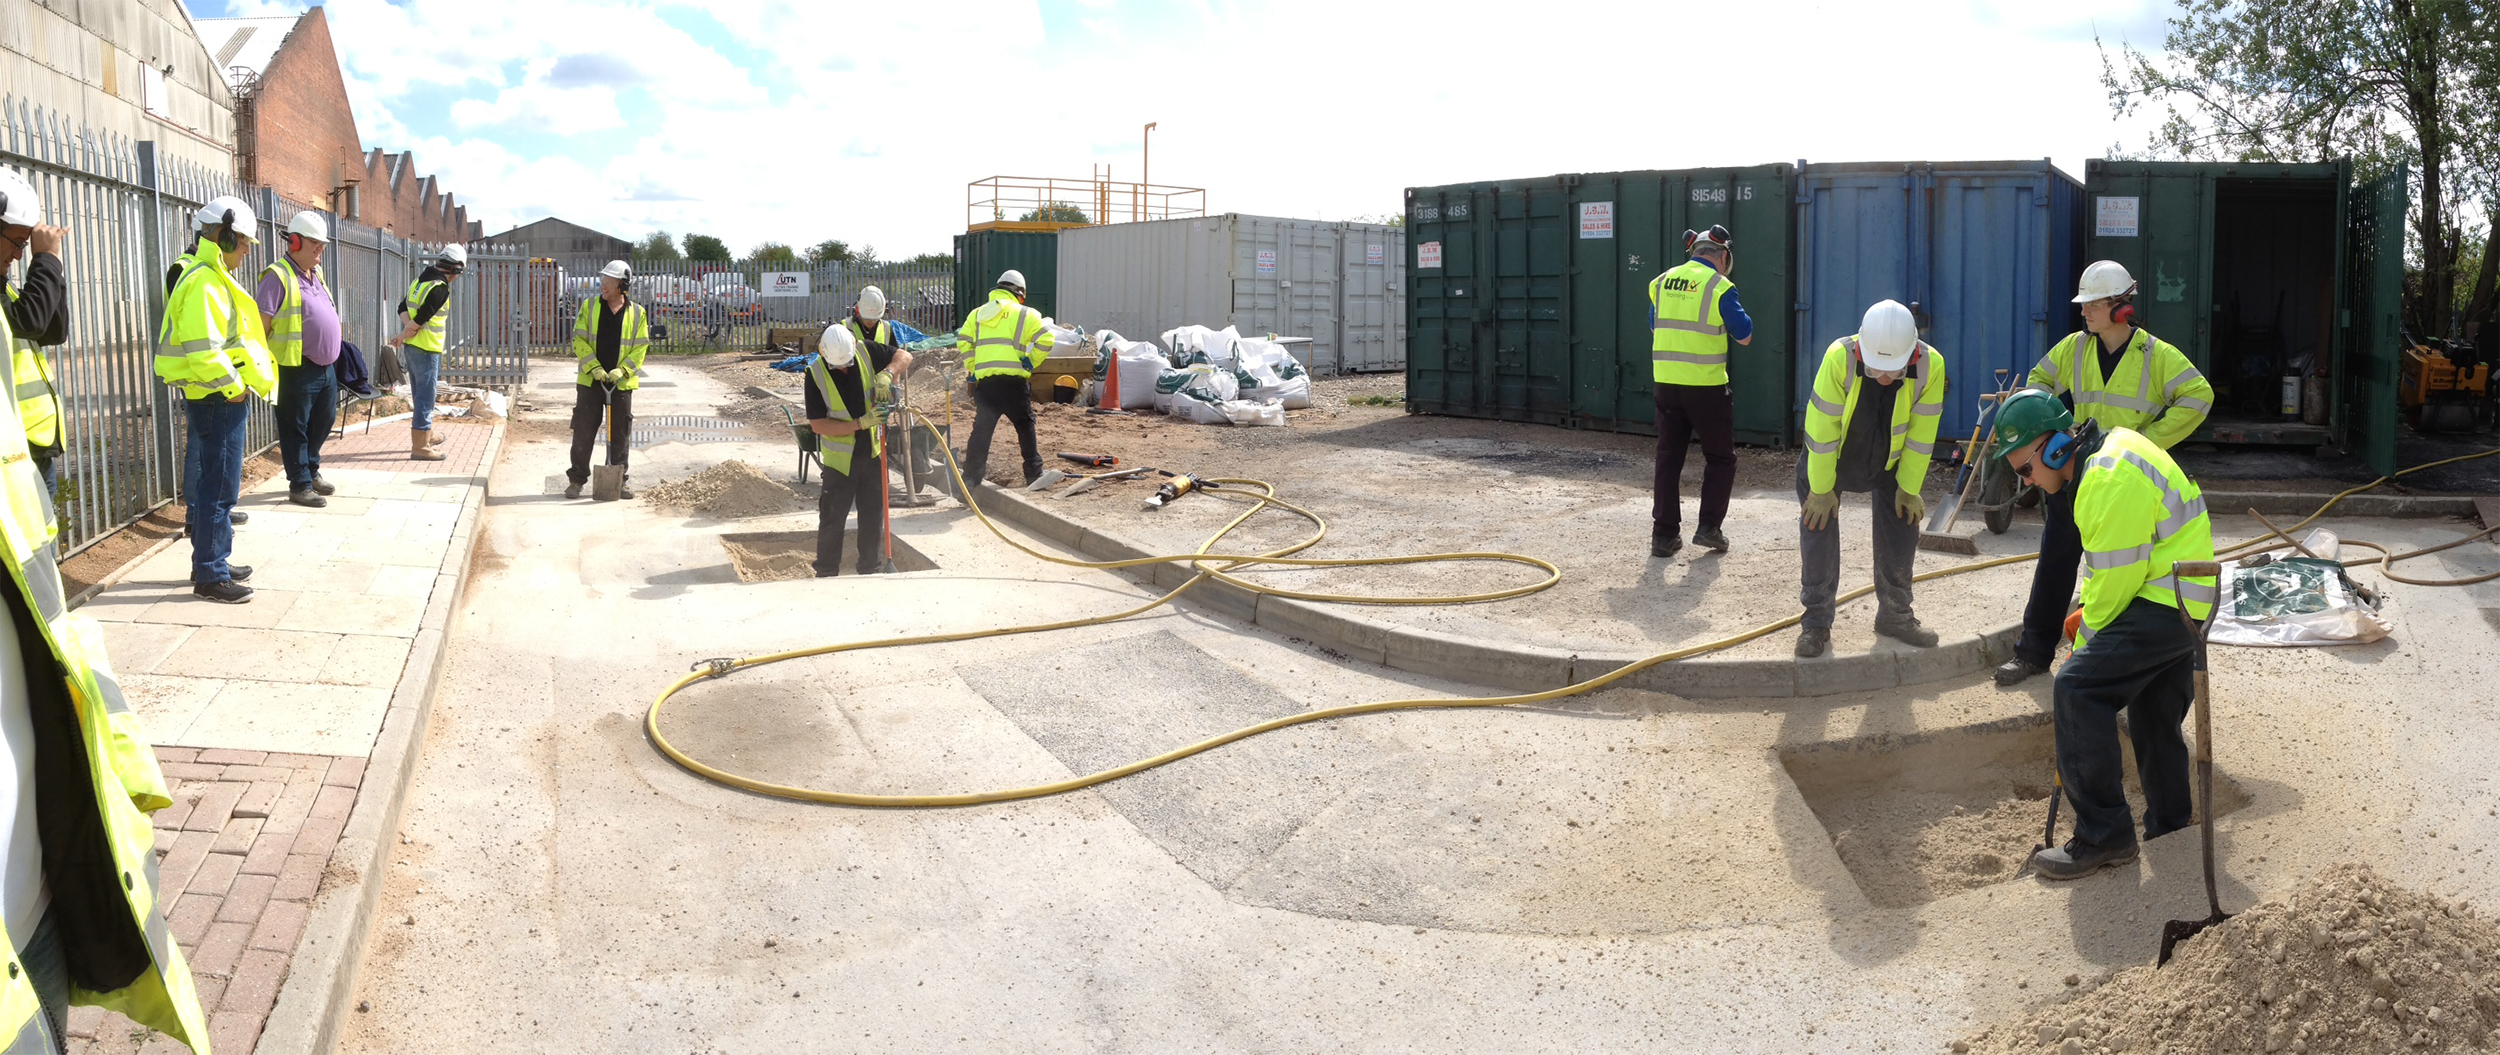 New Roads Street Works Training course in action